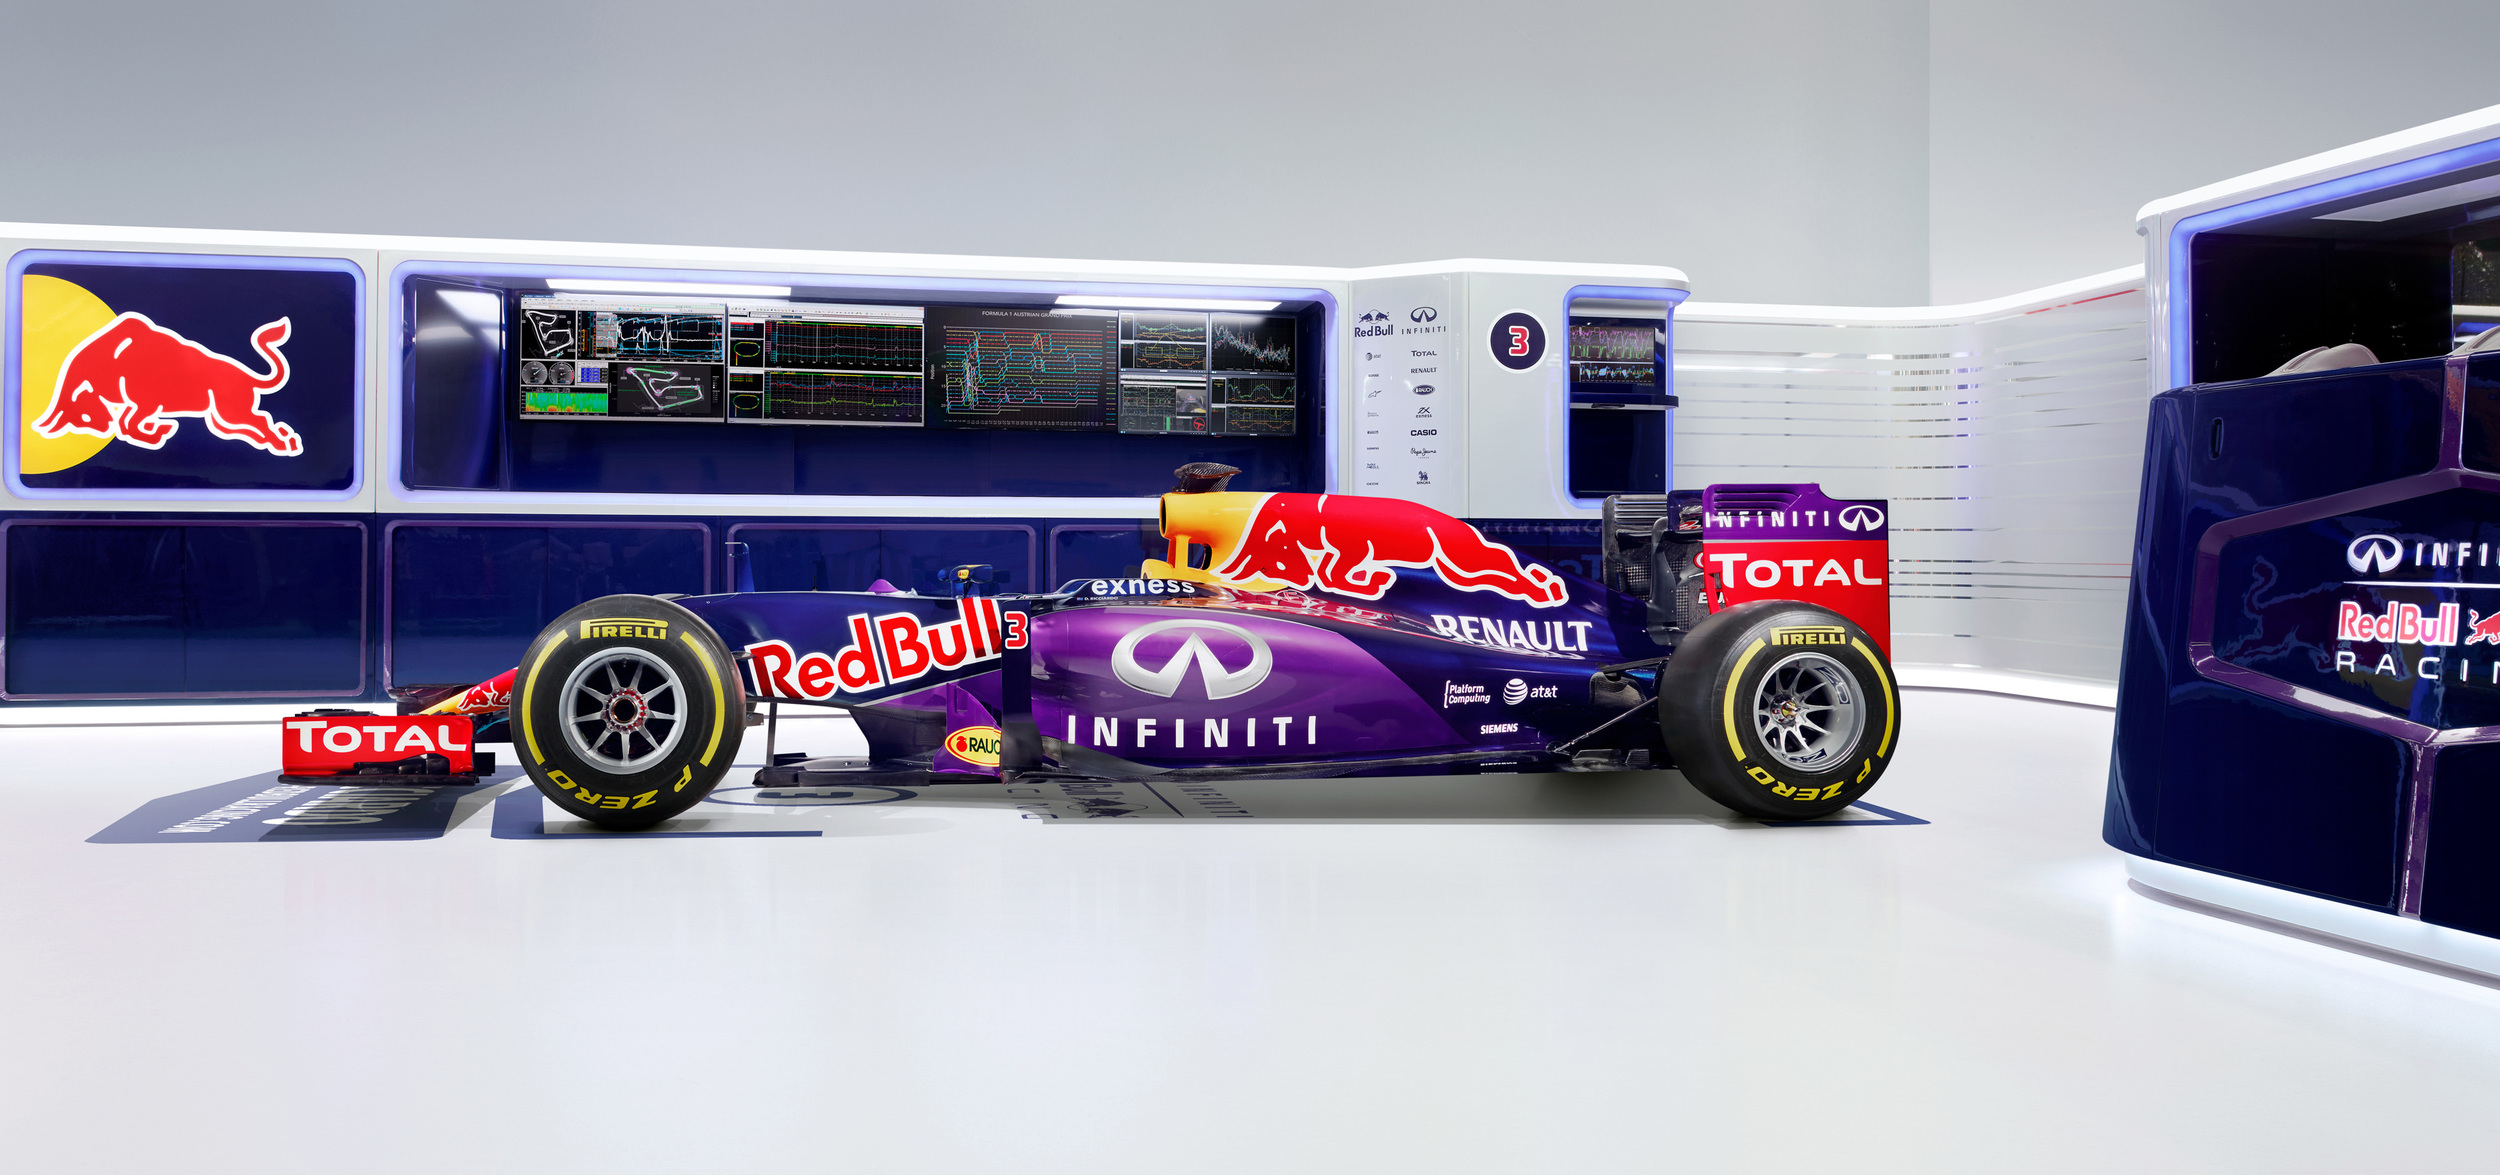 Red Bull Racing And Infiniti Will No Longer Be Partners 2